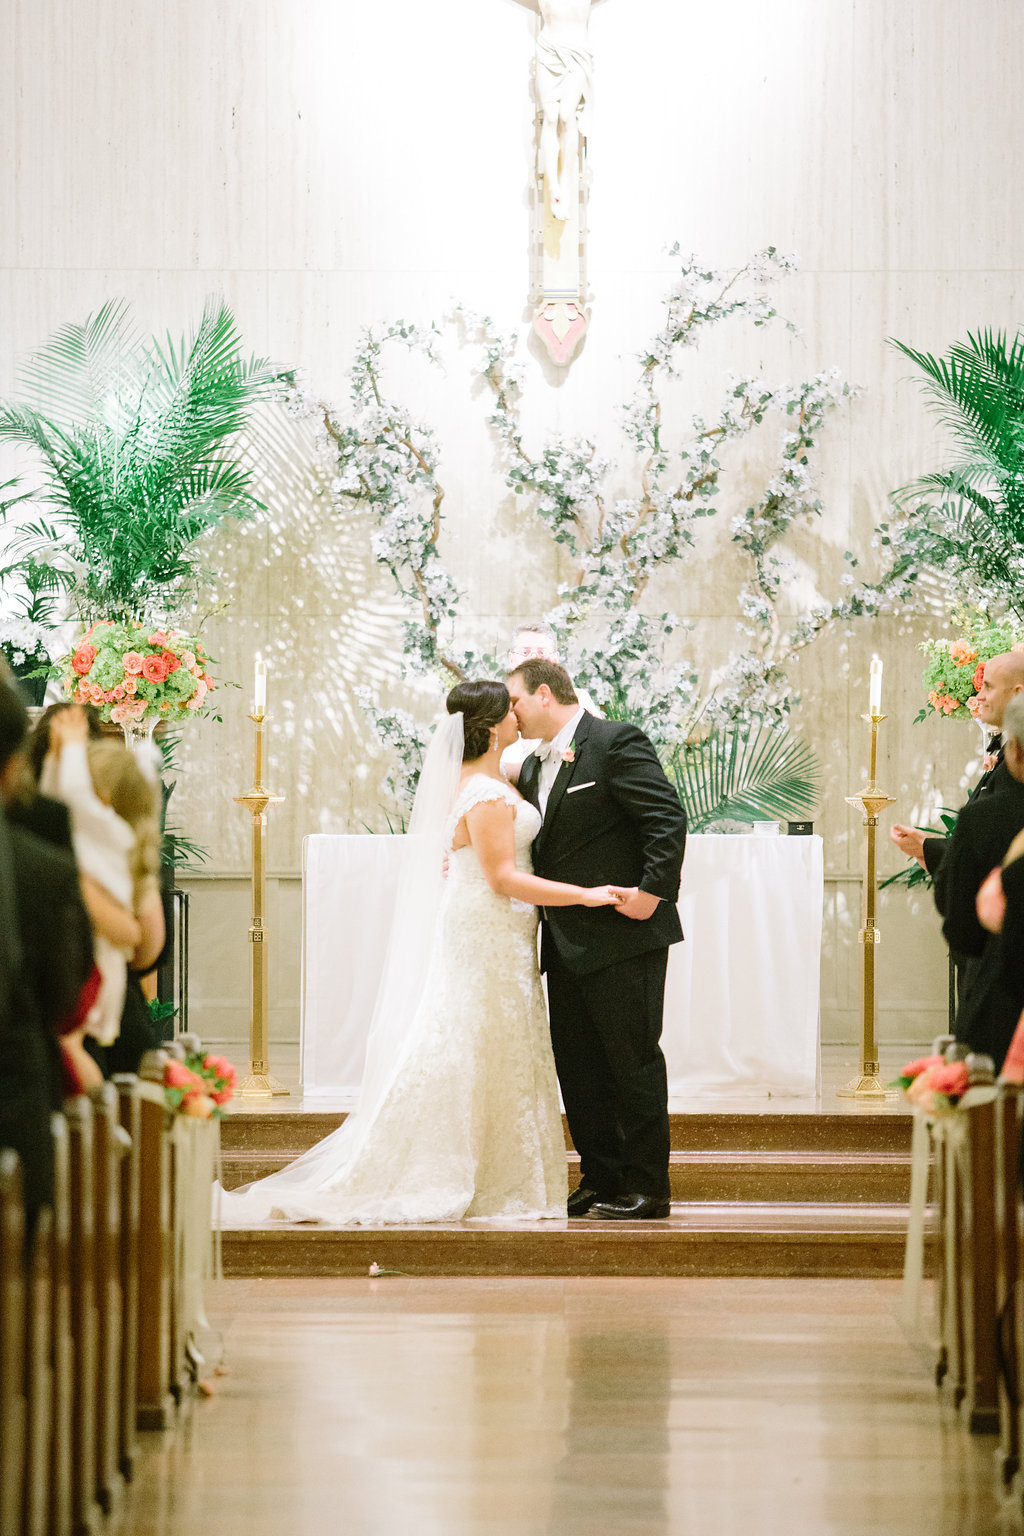 catholic singles in brent Faith focused dating and relationships browse profiles & photos of kansas lenexa catholic singles and join catholicmatchcom, the clear leader in online dating for catholics with more catholic singles than any other catholic dating site.